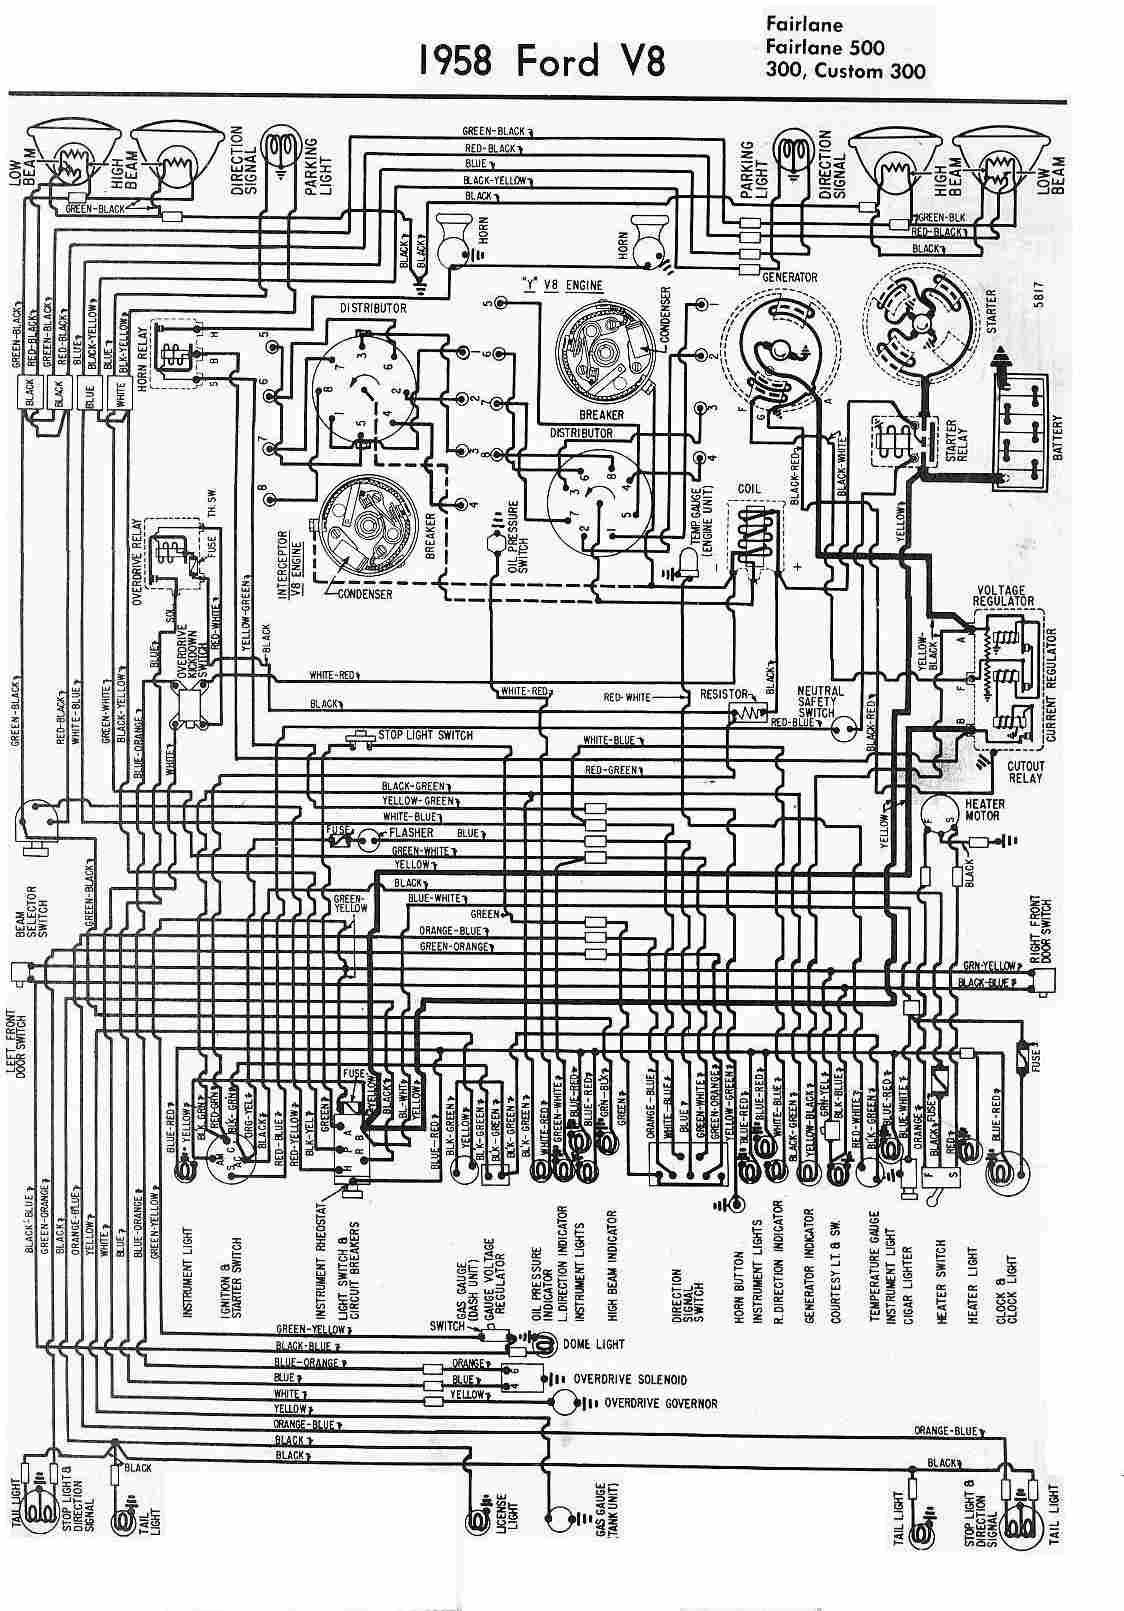 Electrical Wiring Diagram Of 1958 Ford V8 Circuit Diagram Electrical Wiring Diagram Diagram